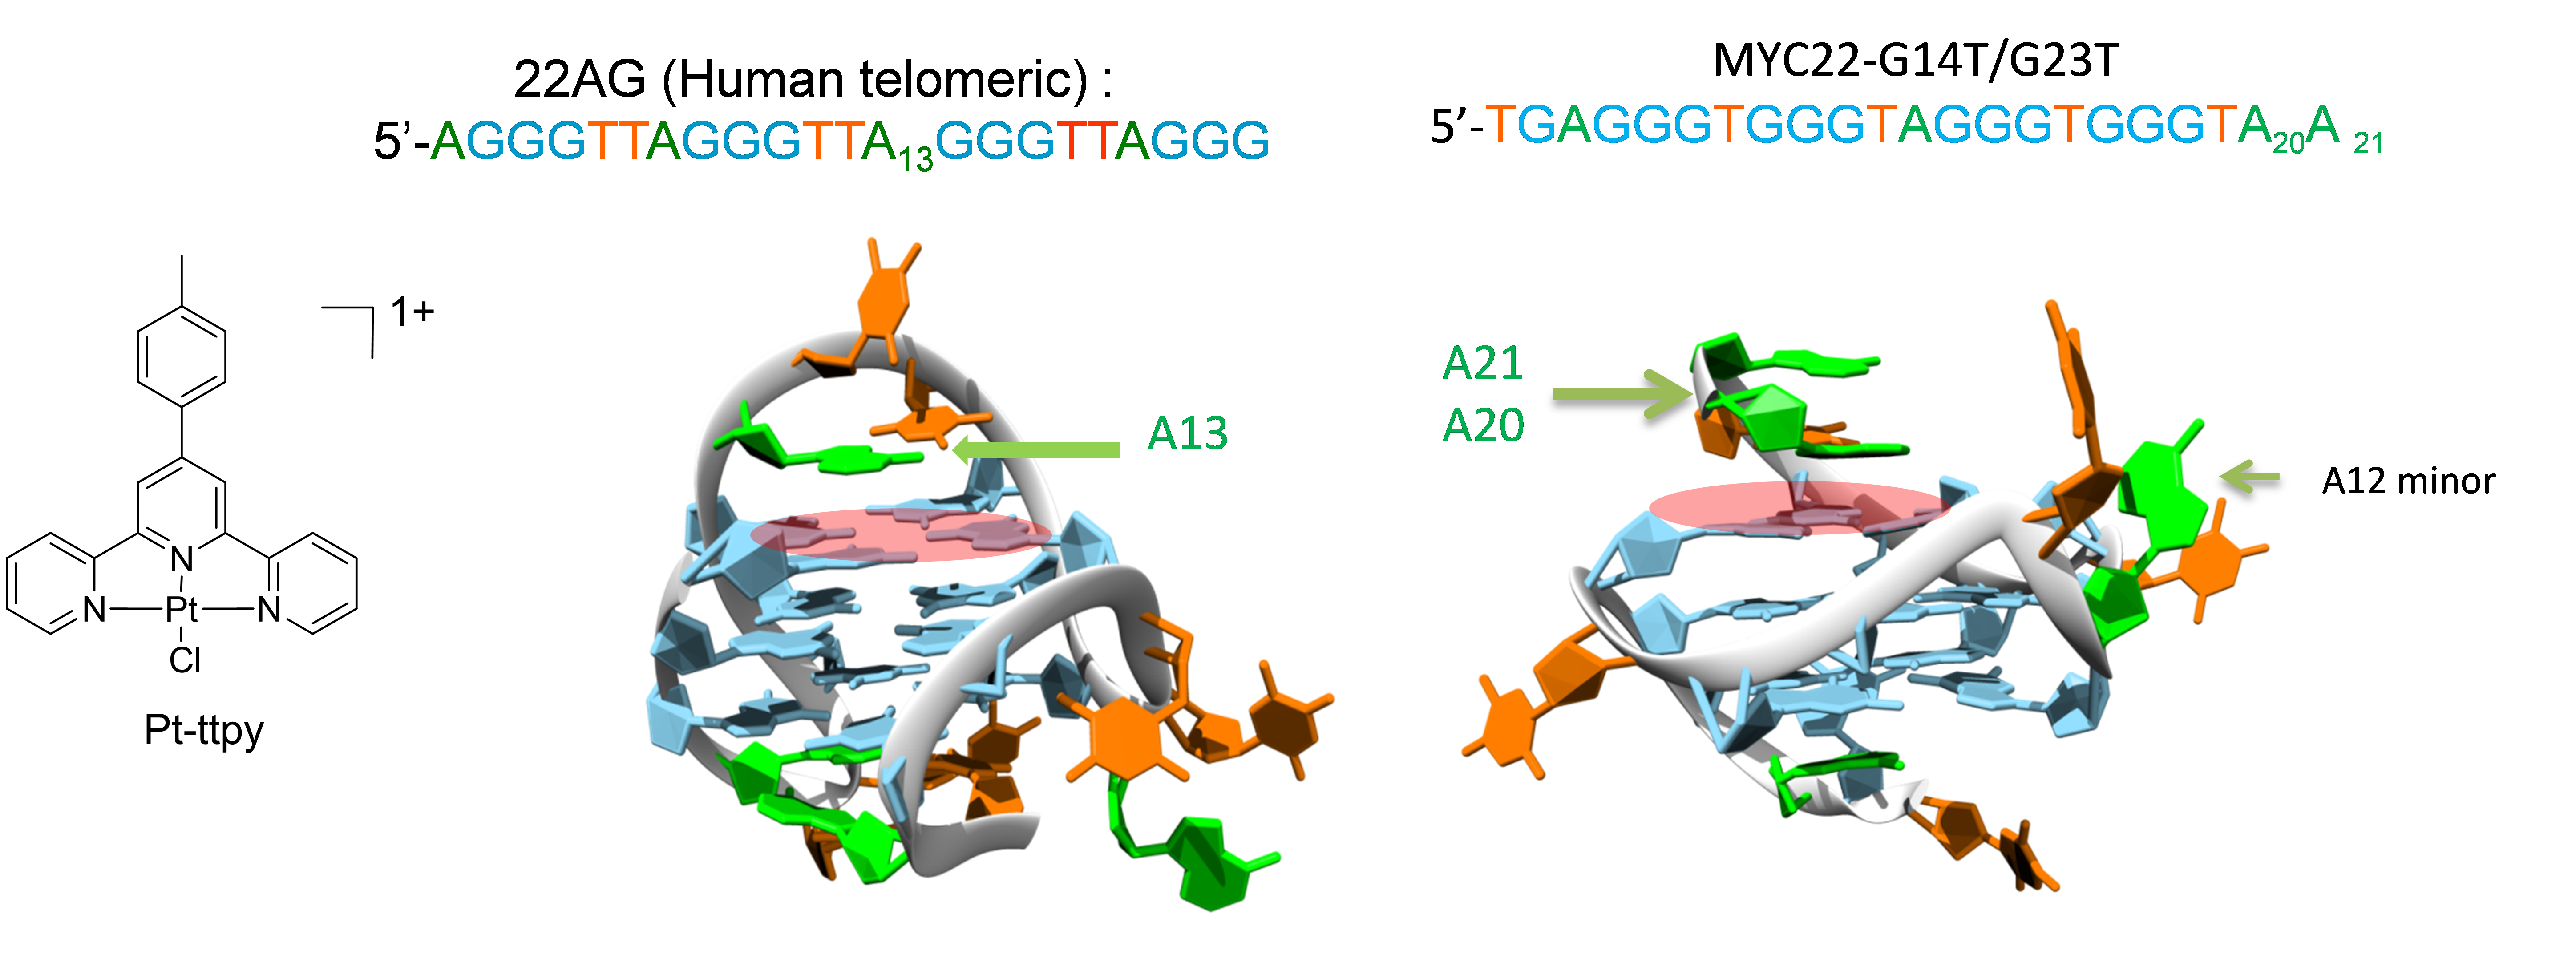 Structure of the tolyterpyridine Pt(II) derivative Pt-ttPy and representation of the platination of adenine residues surrounding the top quartet in the telomeric (22AG) and the modified oncogene c-myc (myc22) quadruplex forming sequences ( bound Pt-ttpy in pink).